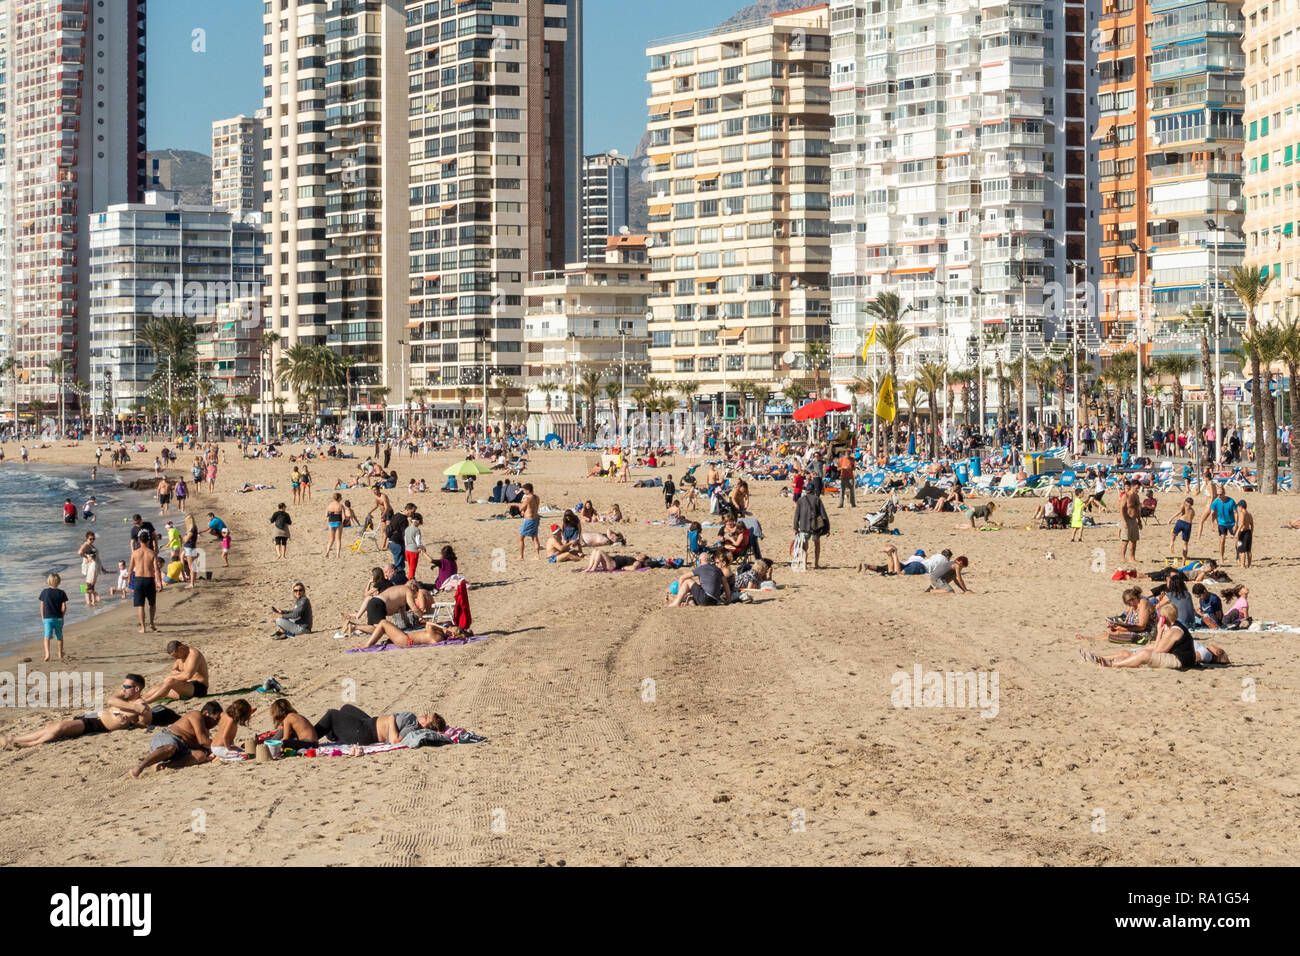 Benidorm, Spain. 30 December 2018. British tourists mix with locals on the beaches and in the bars and restaurants as they escape the cold British weather and head south to Spain. High temperatures meant that the beaches were busy from early morning with families enjoying the calm sea and temps of about 17 Celsius. Hotel occupancy is 90% for the Christmas and New Year period in this popular Spanish resort. Credit: Mick Flynn/Alamy Live News Stock Photo